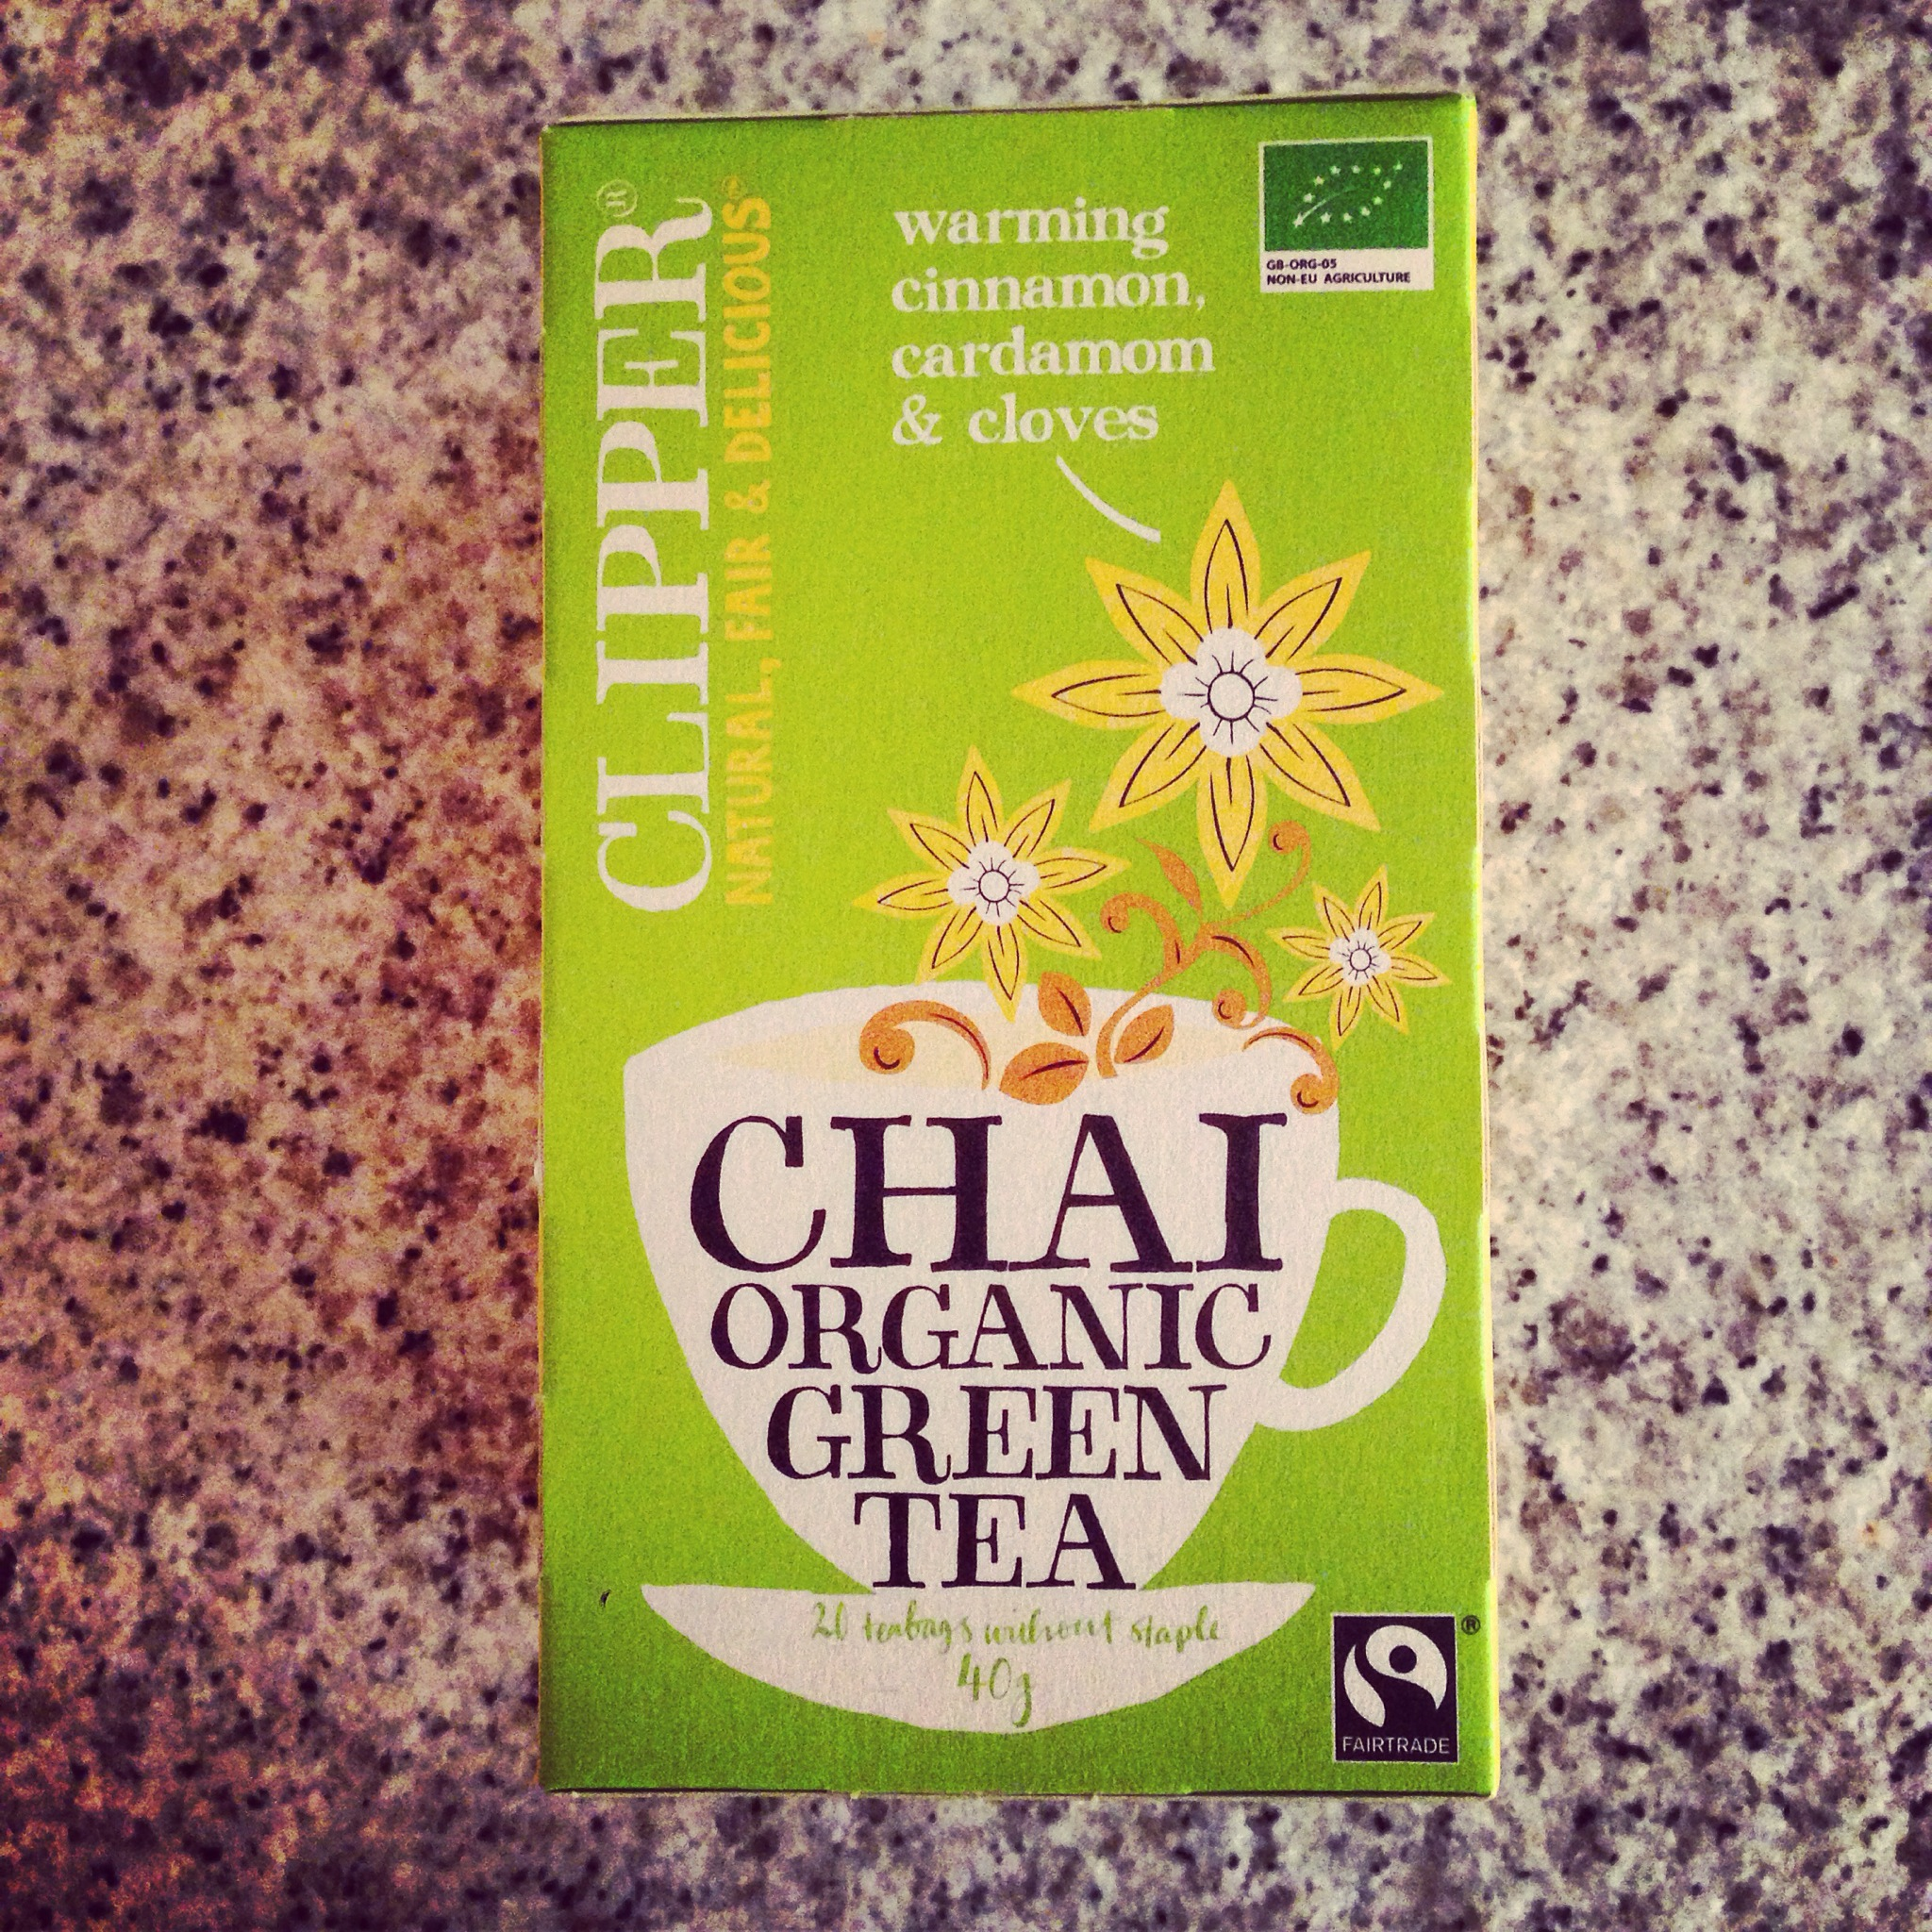 Clipper Tea Natural Fair and Delicious. Chai Organic Green Tea.